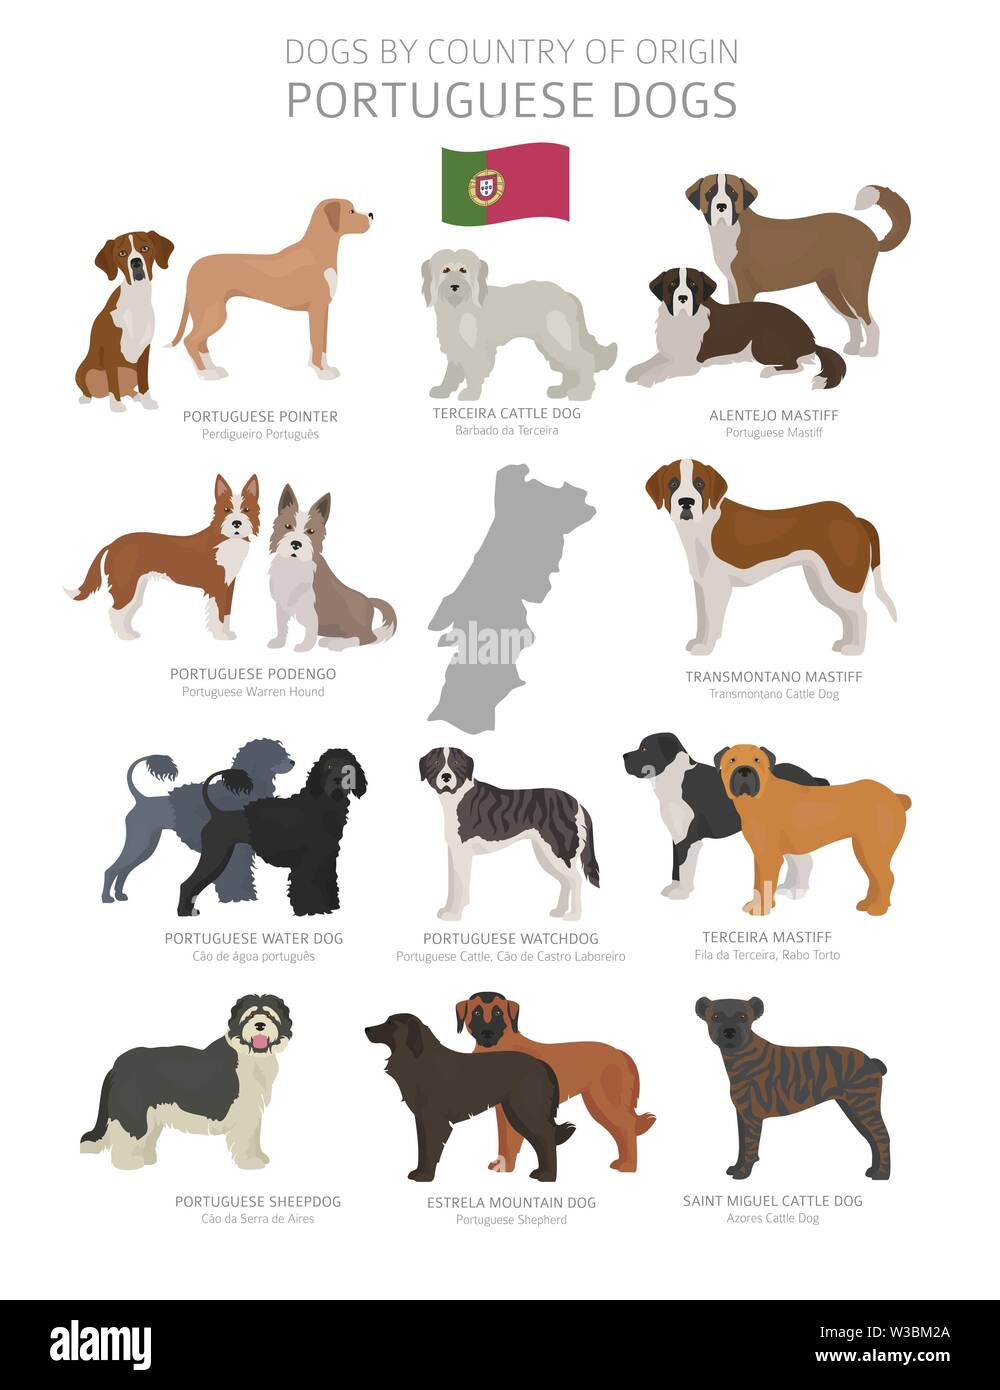 Dogs by country of origin. Portugal dog breeds. Shepherds, hunting, herding, toy, working and service dogs  set.  Vector illustration - Stock Image